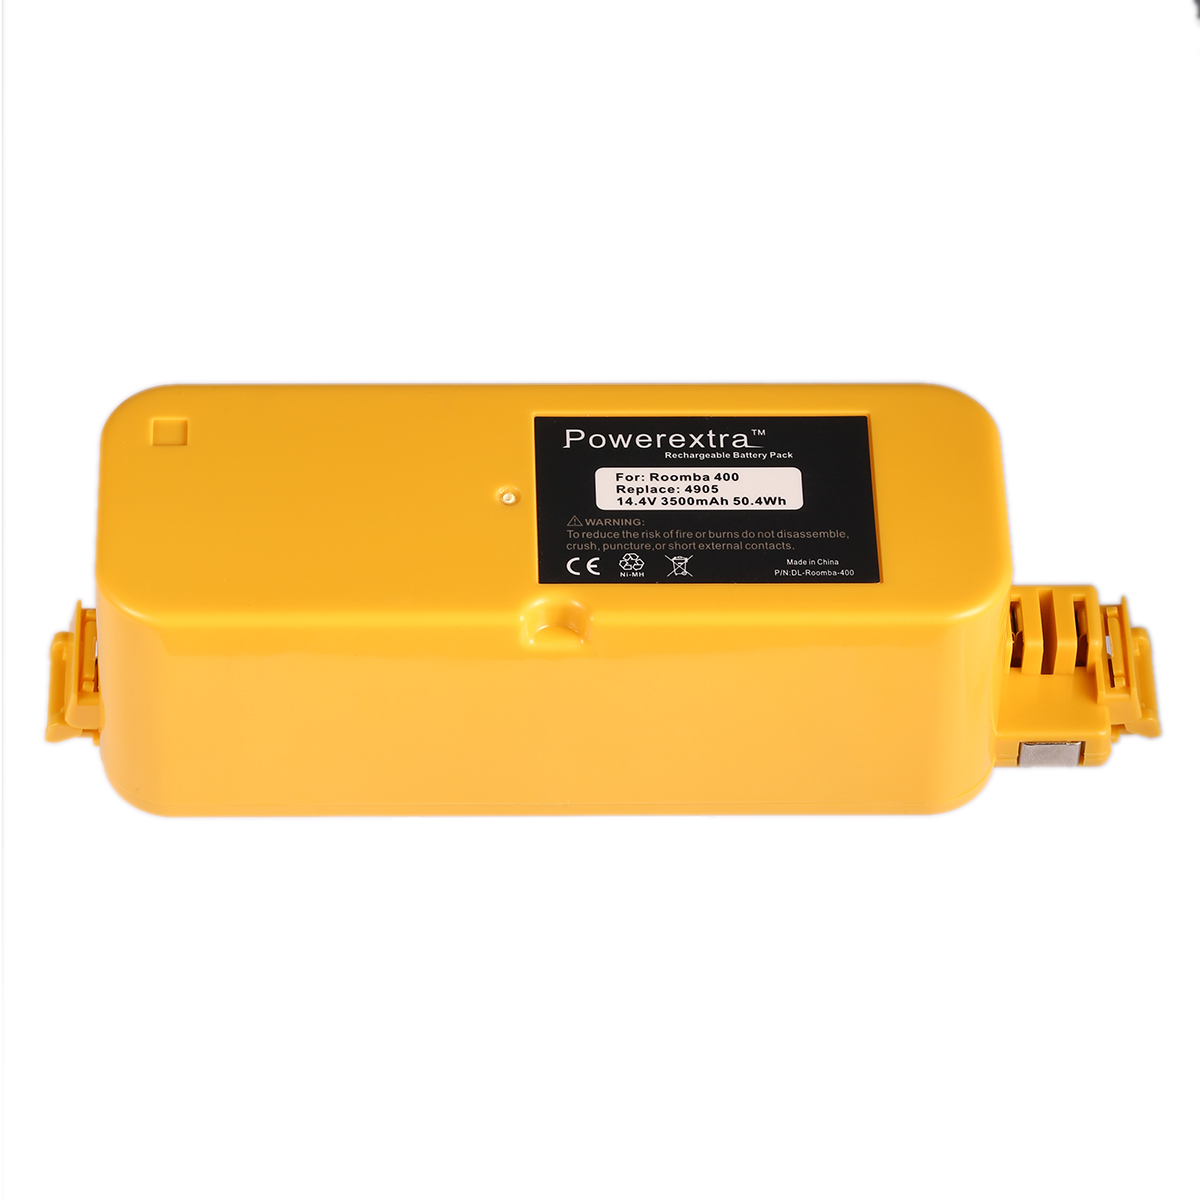 14 4v vacuum aps battery for irobot roomba 400 4905 4000 series dirt dog 3500mah ebay. Black Bedroom Furniture Sets. Home Design Ideas